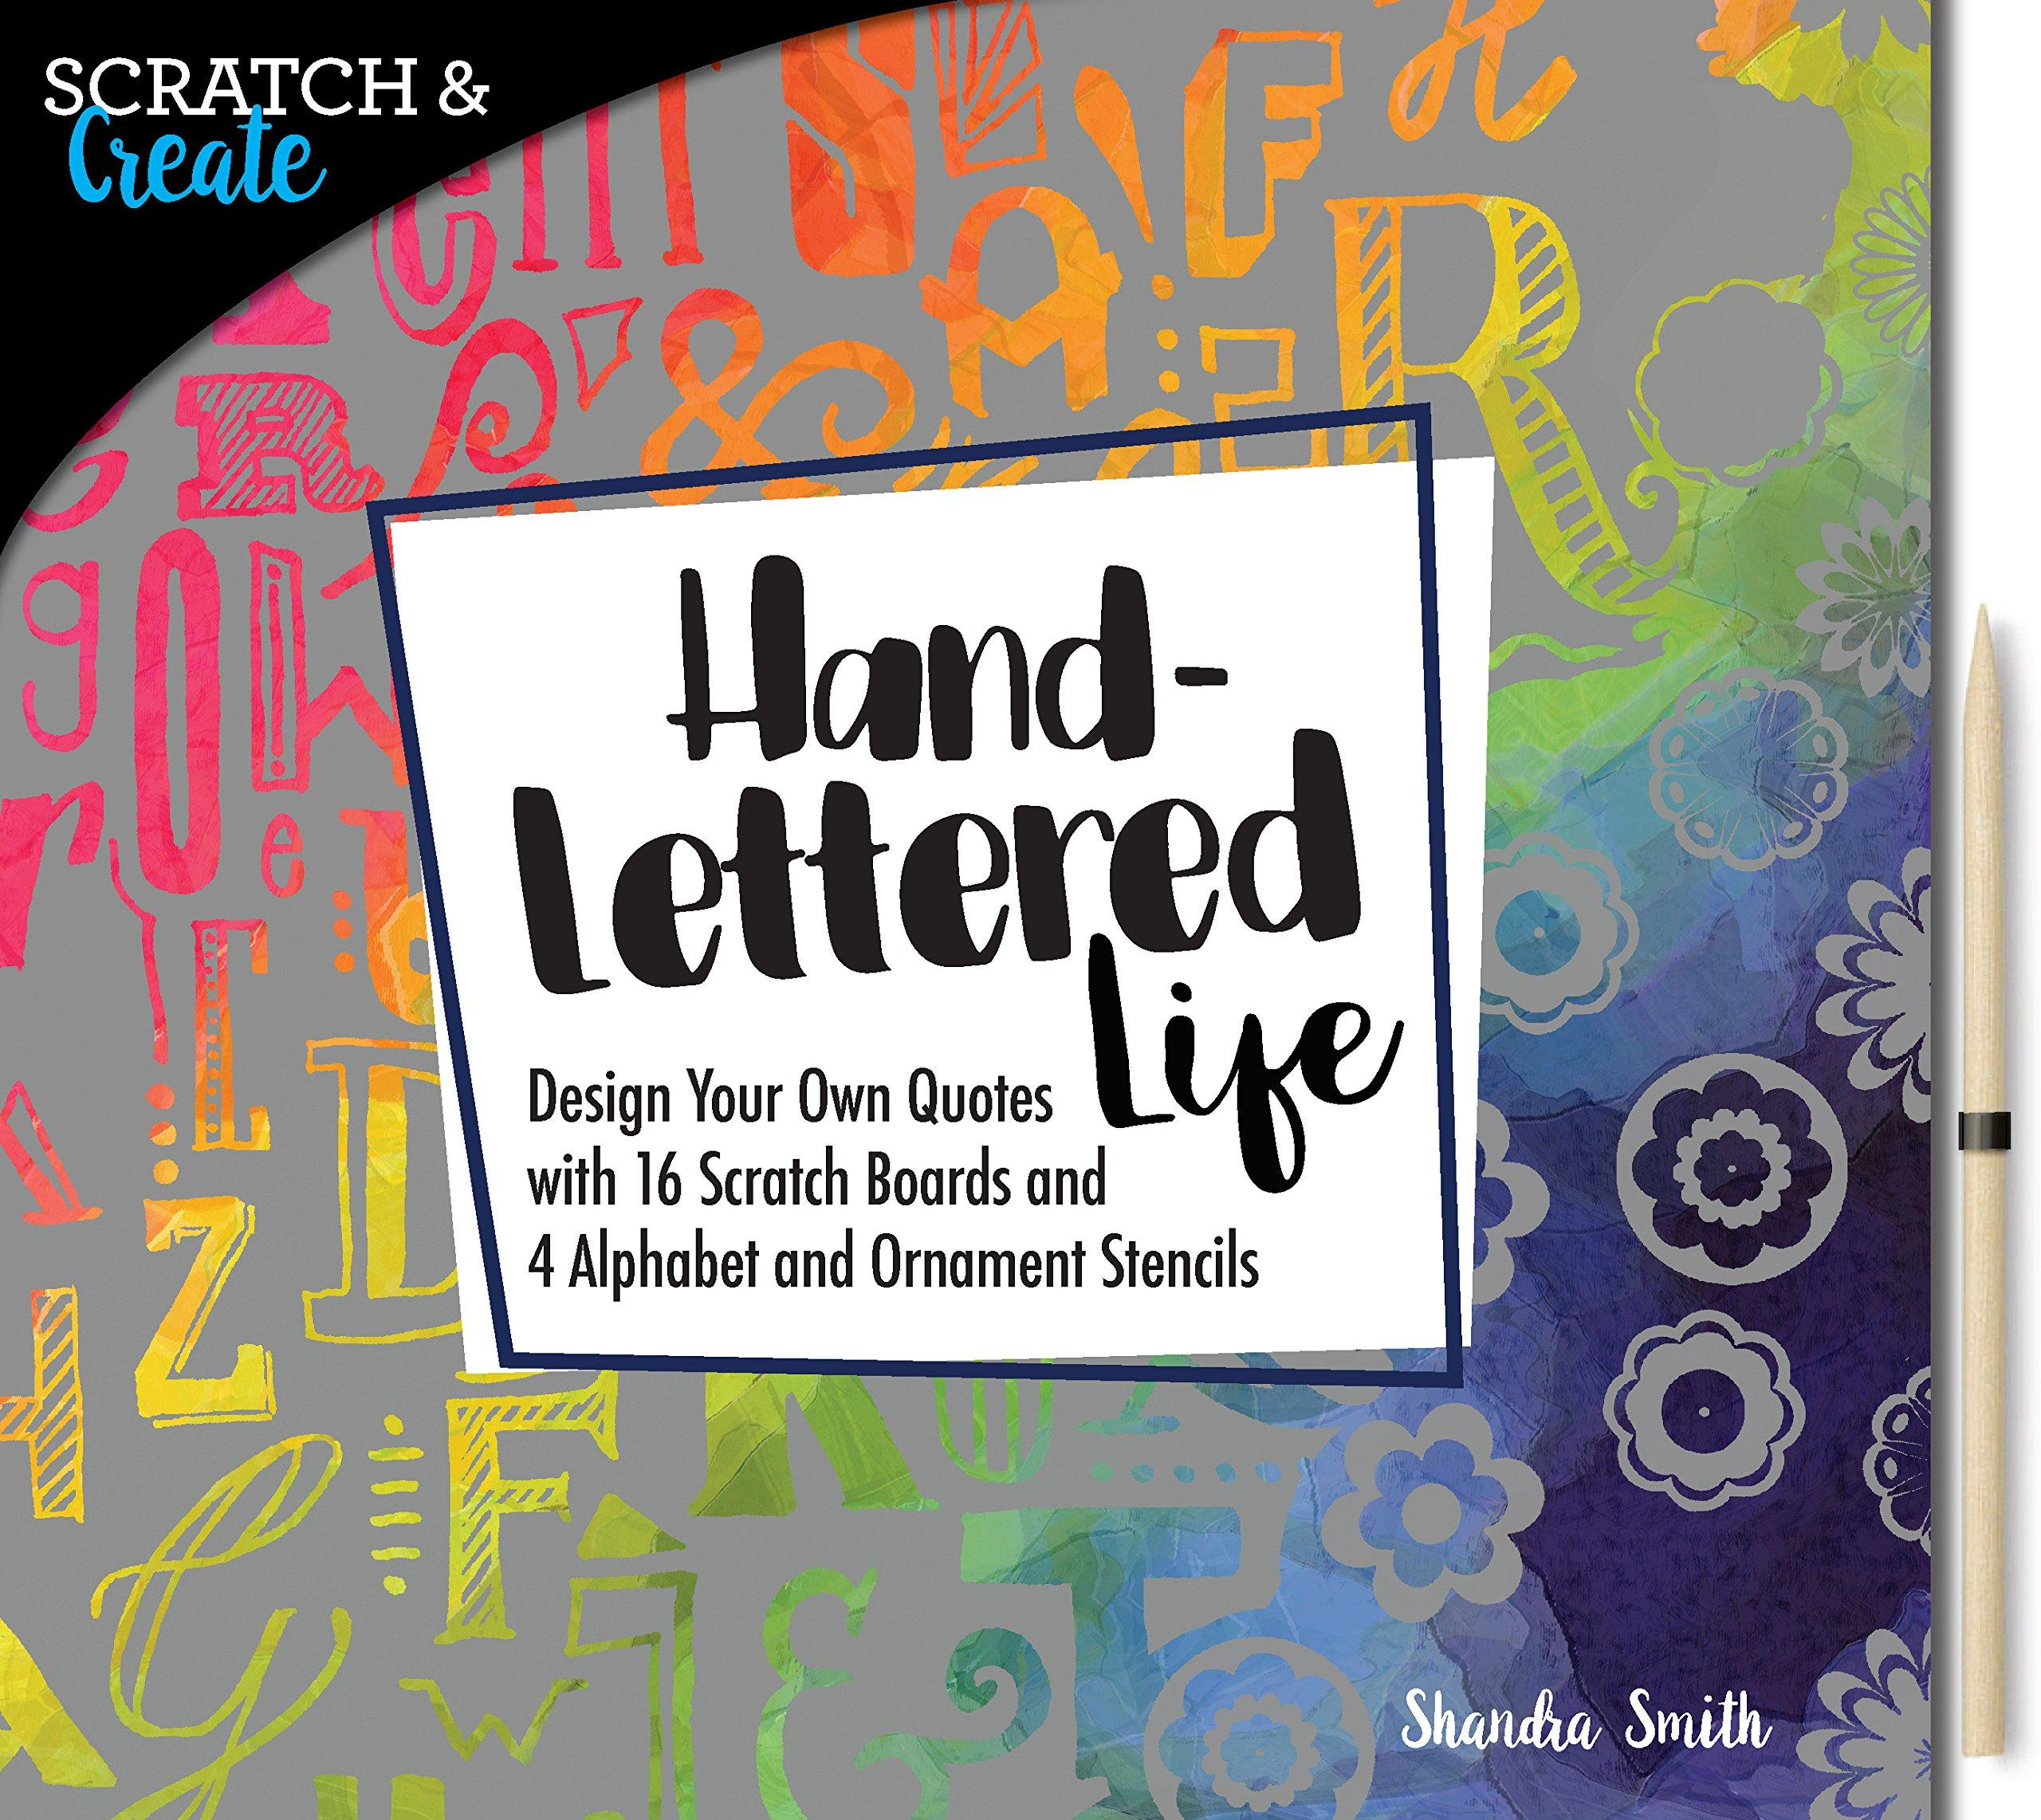 Scratch and Create: Hand-Lettered Life